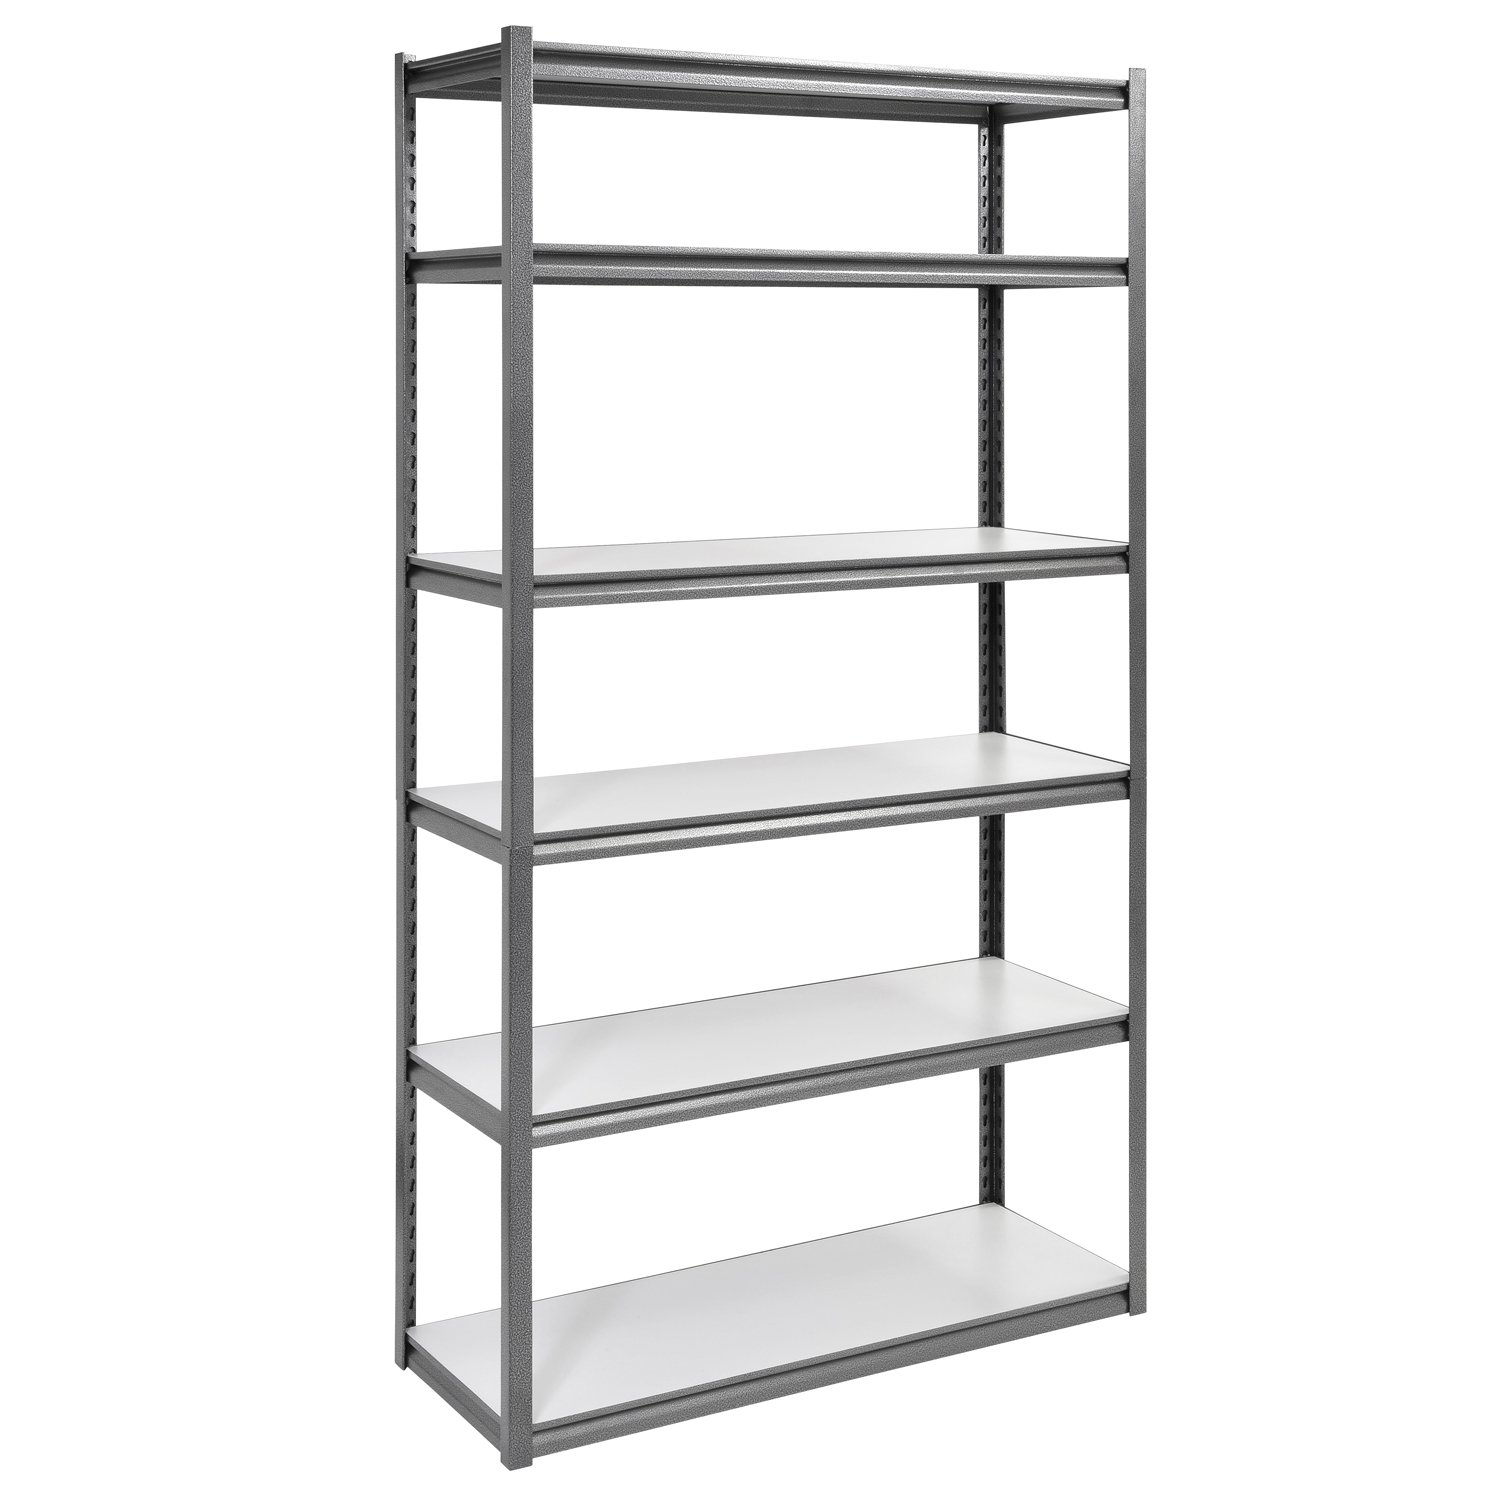 Muscle Rack UR4818HPSVL6 Boltless Storage Rack with 6 Shelves, 3000 lb Capacity, 48'' Width x 84'' Height x 18'' Depth, Silvervein by Muscle Rack